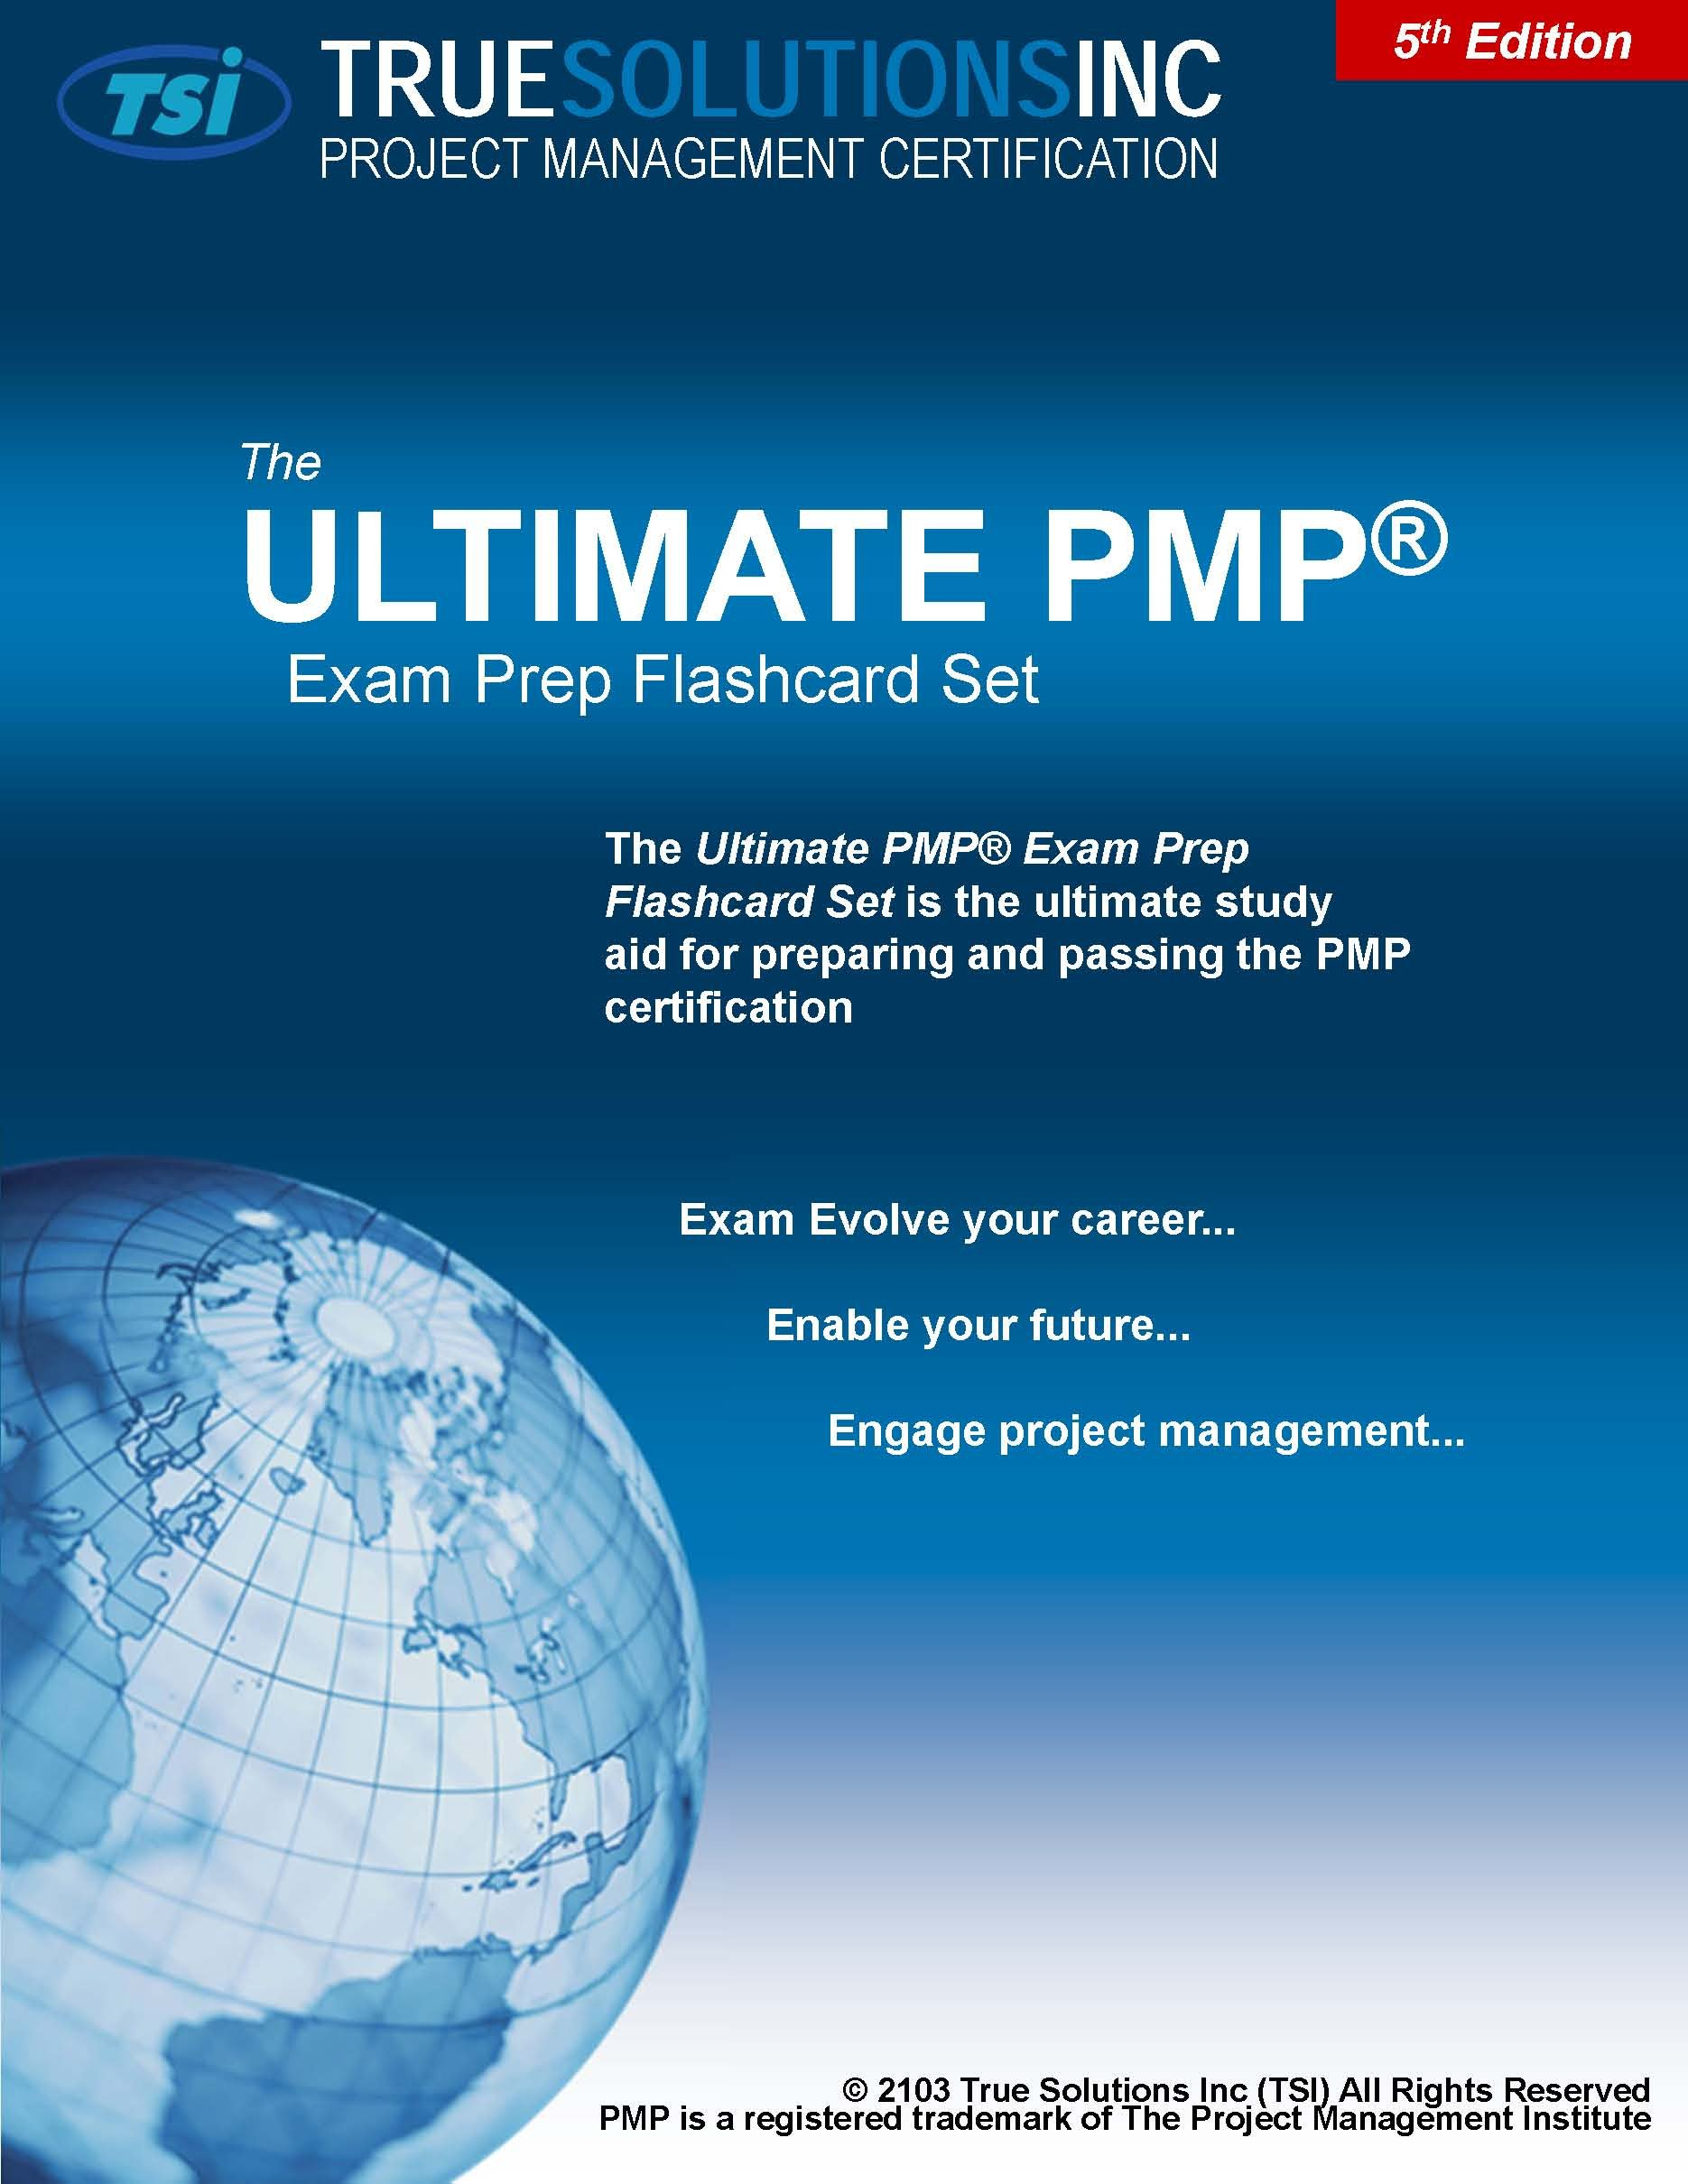 Pmpcapm exam prep flash cards 5th edition wes balakian pmp pmpcapm exam prep flash cards 5th edition wes balakian pmp timothy s bergmann 9780982393314 amazon books 1betcityfo Choice Image